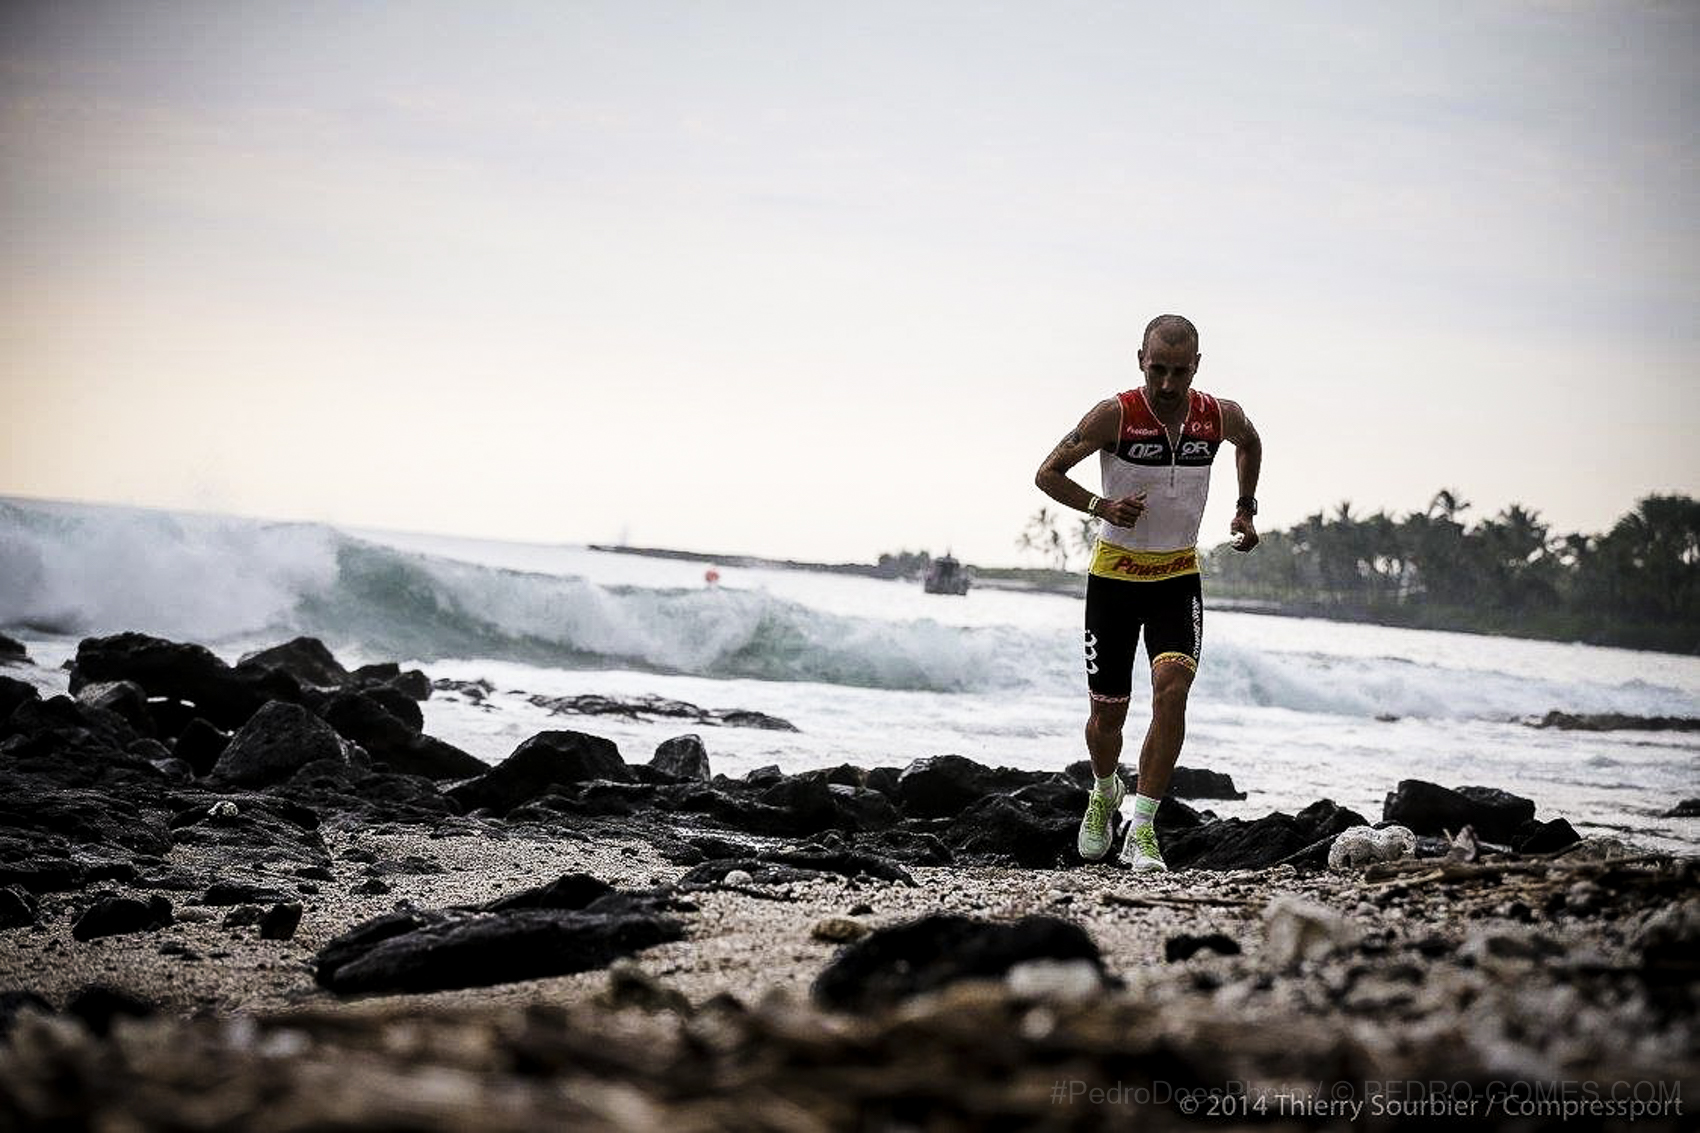 Getting to Kona, Ironman World Championship